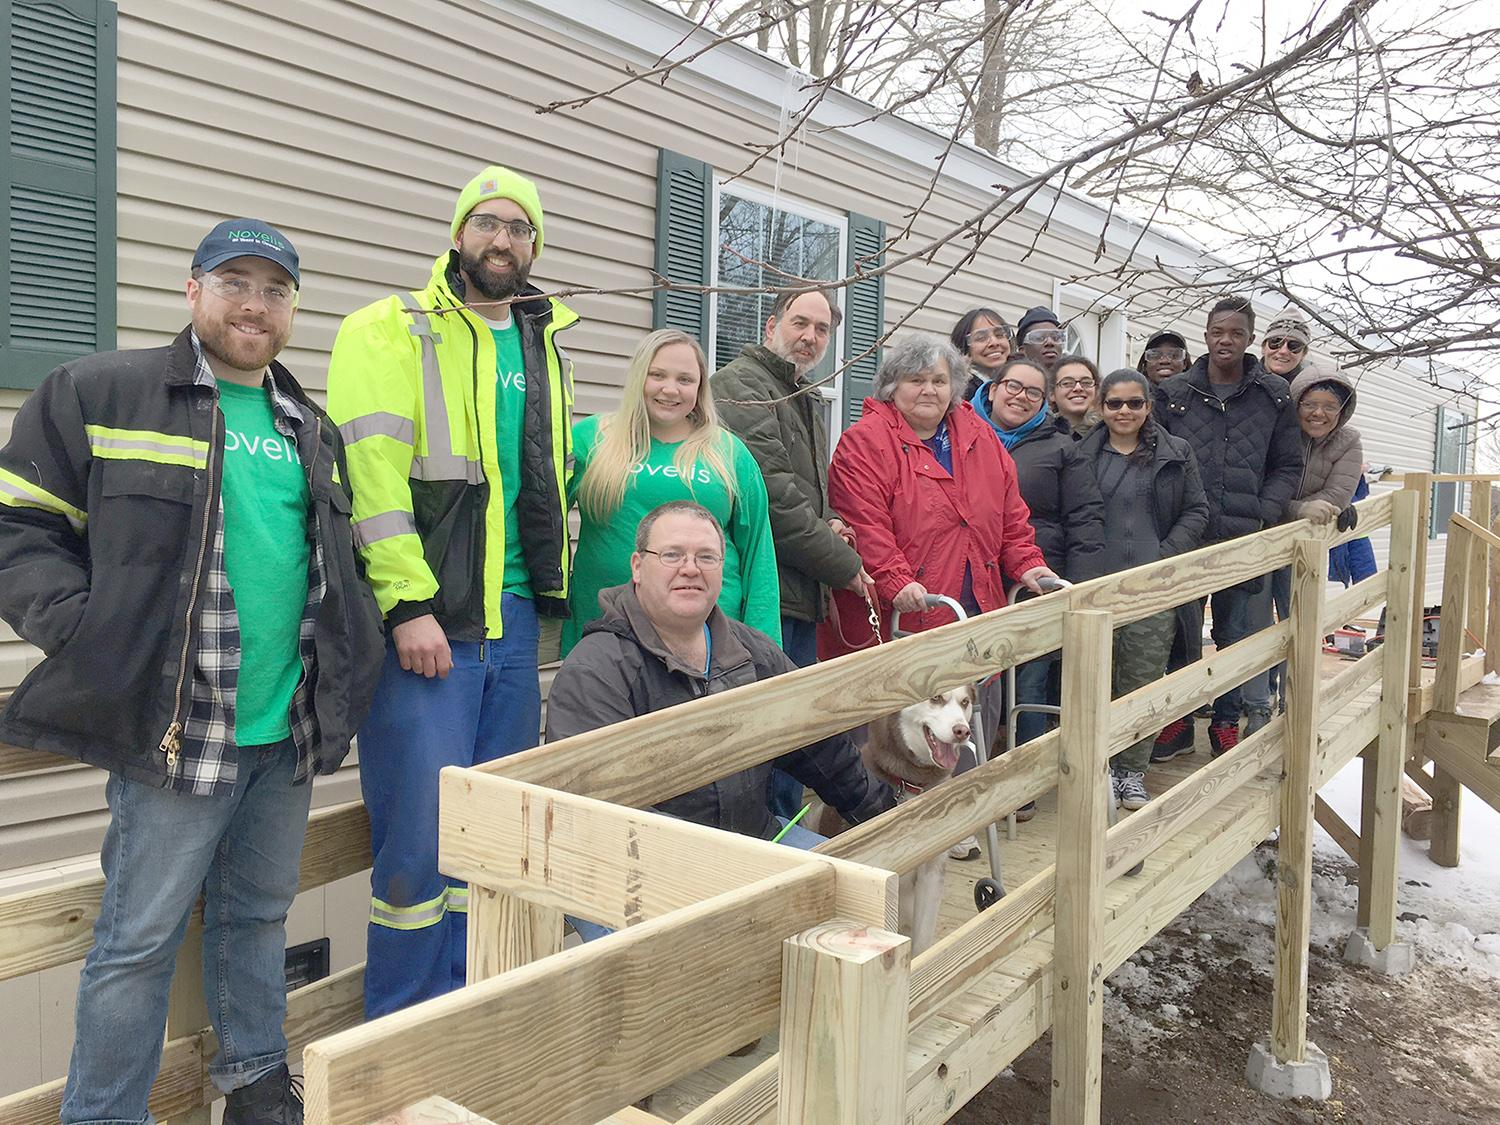 Students work with Novelis employees to build ramps for ARISE